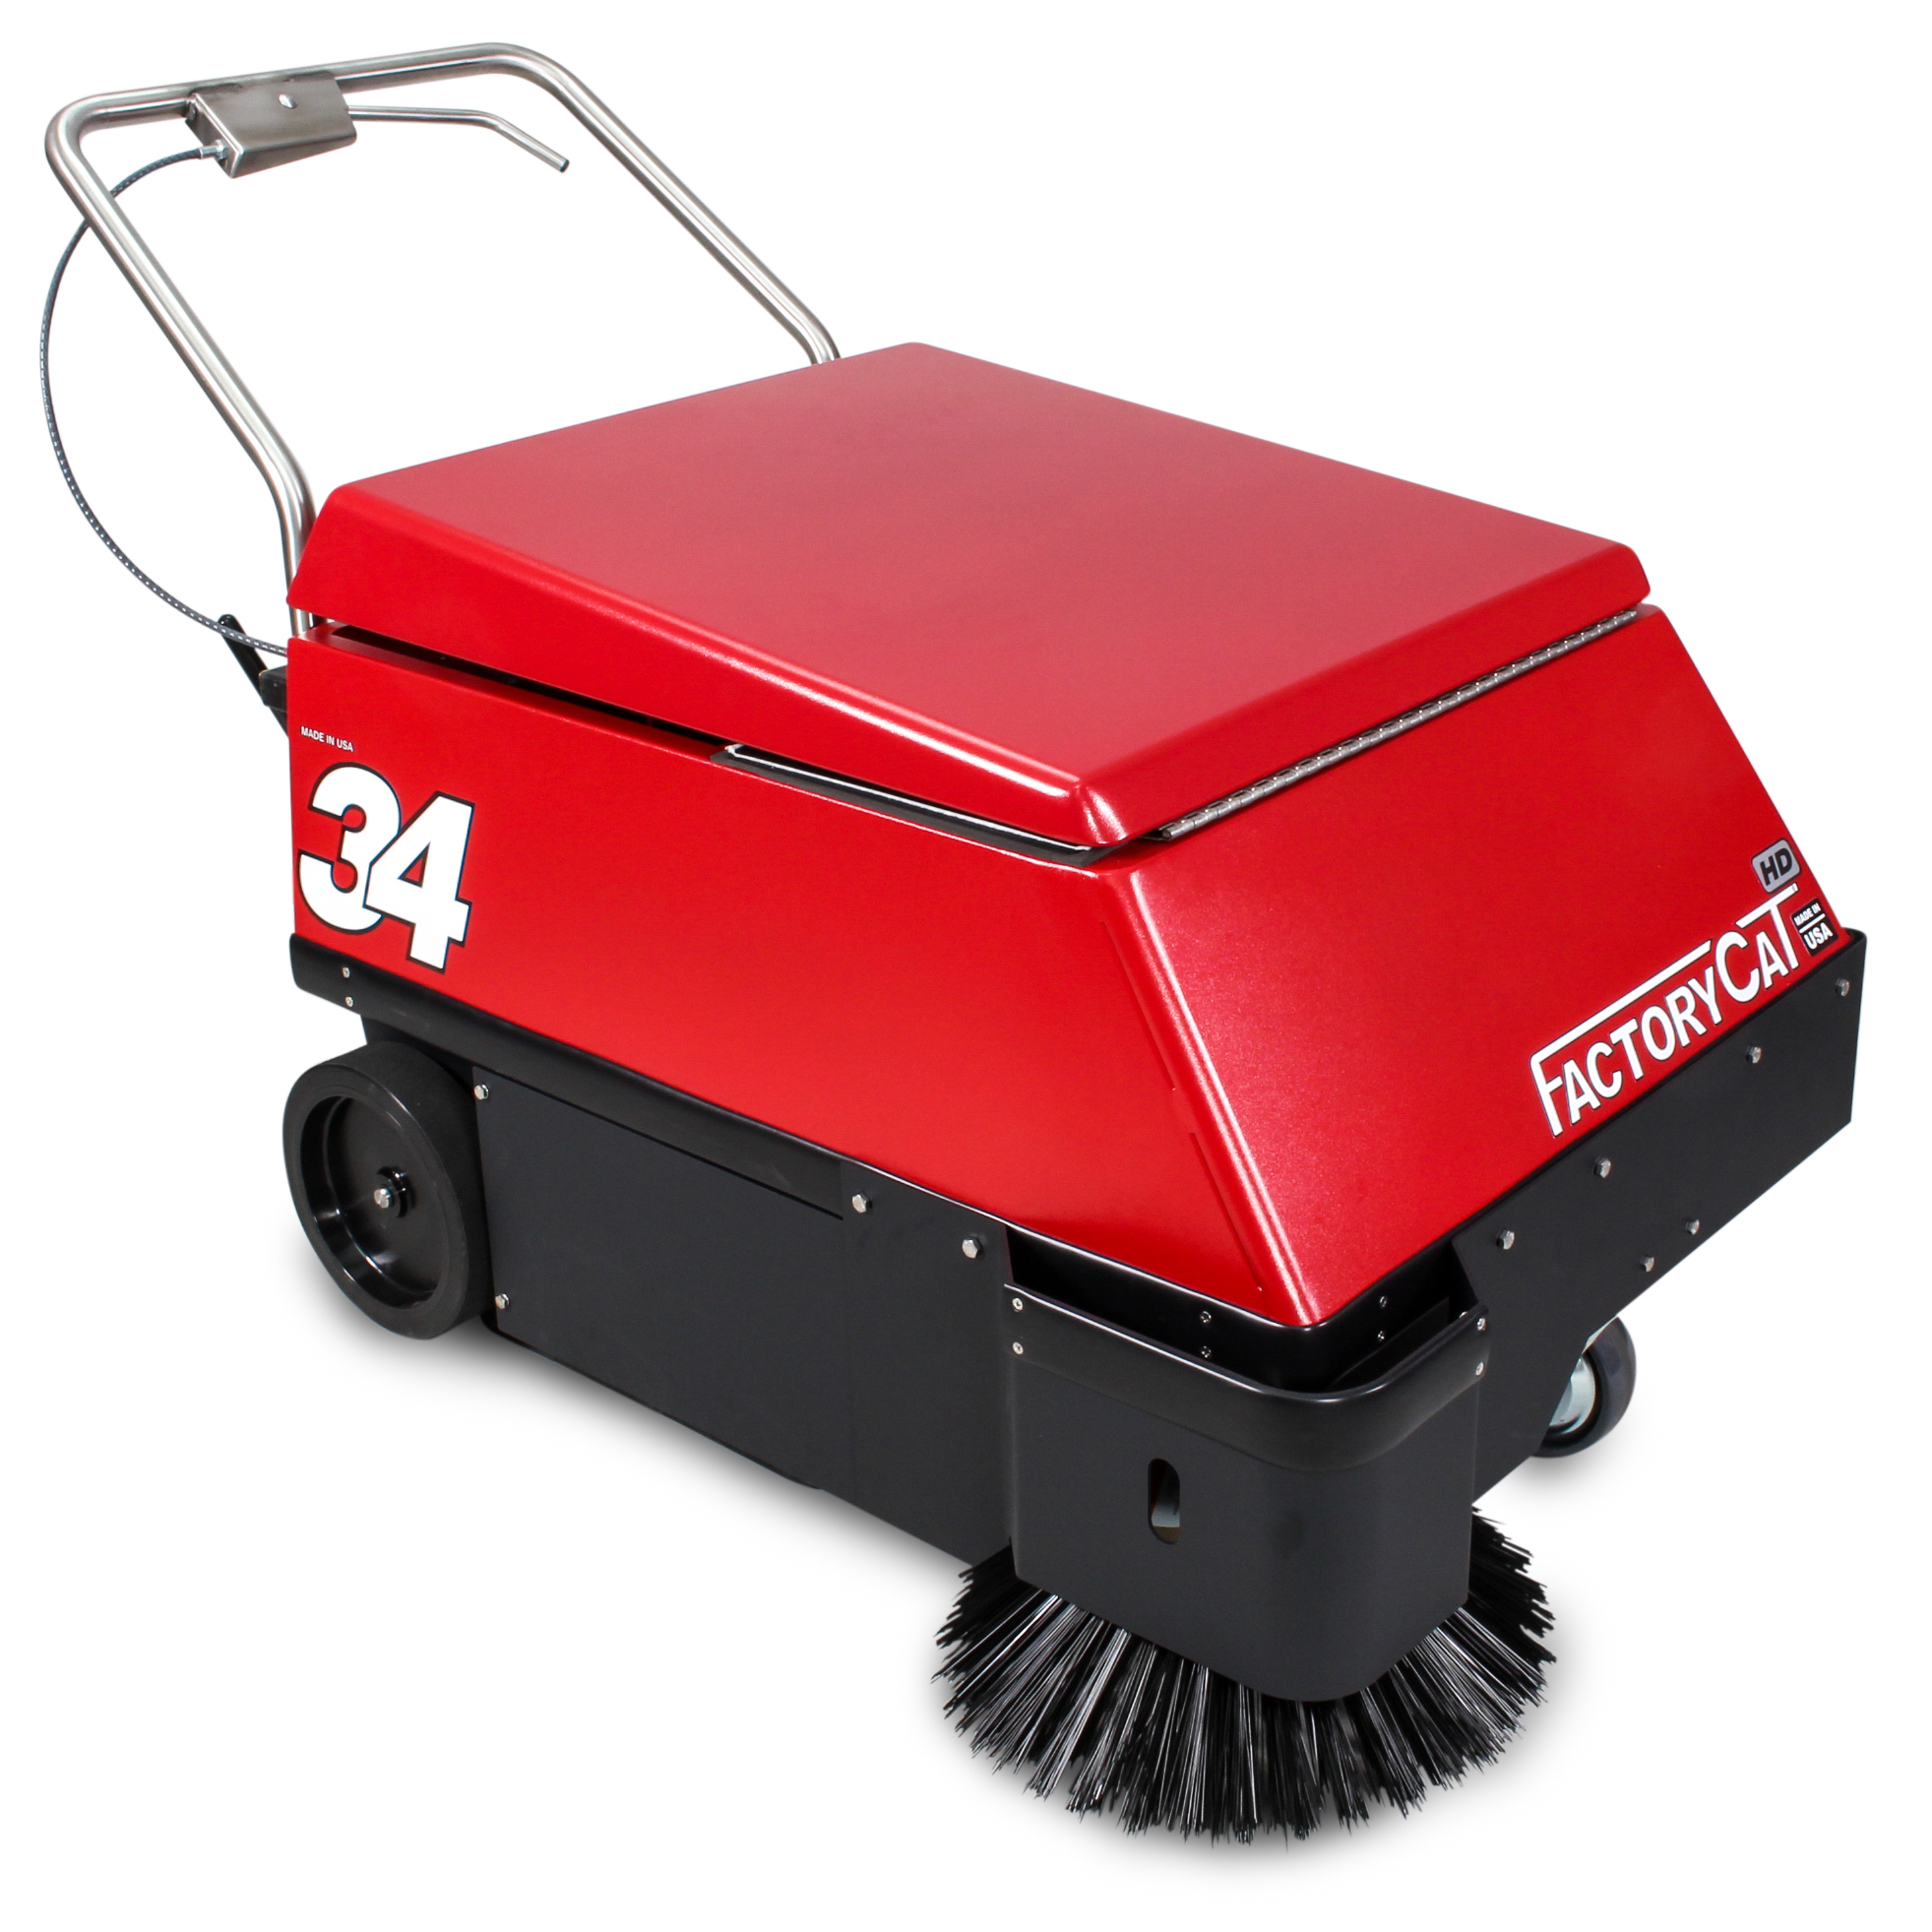 Most Reliable Truck Ever >> Factory Cat Model 34 Walk-Behind Floor Sweeper - System Clean Inc